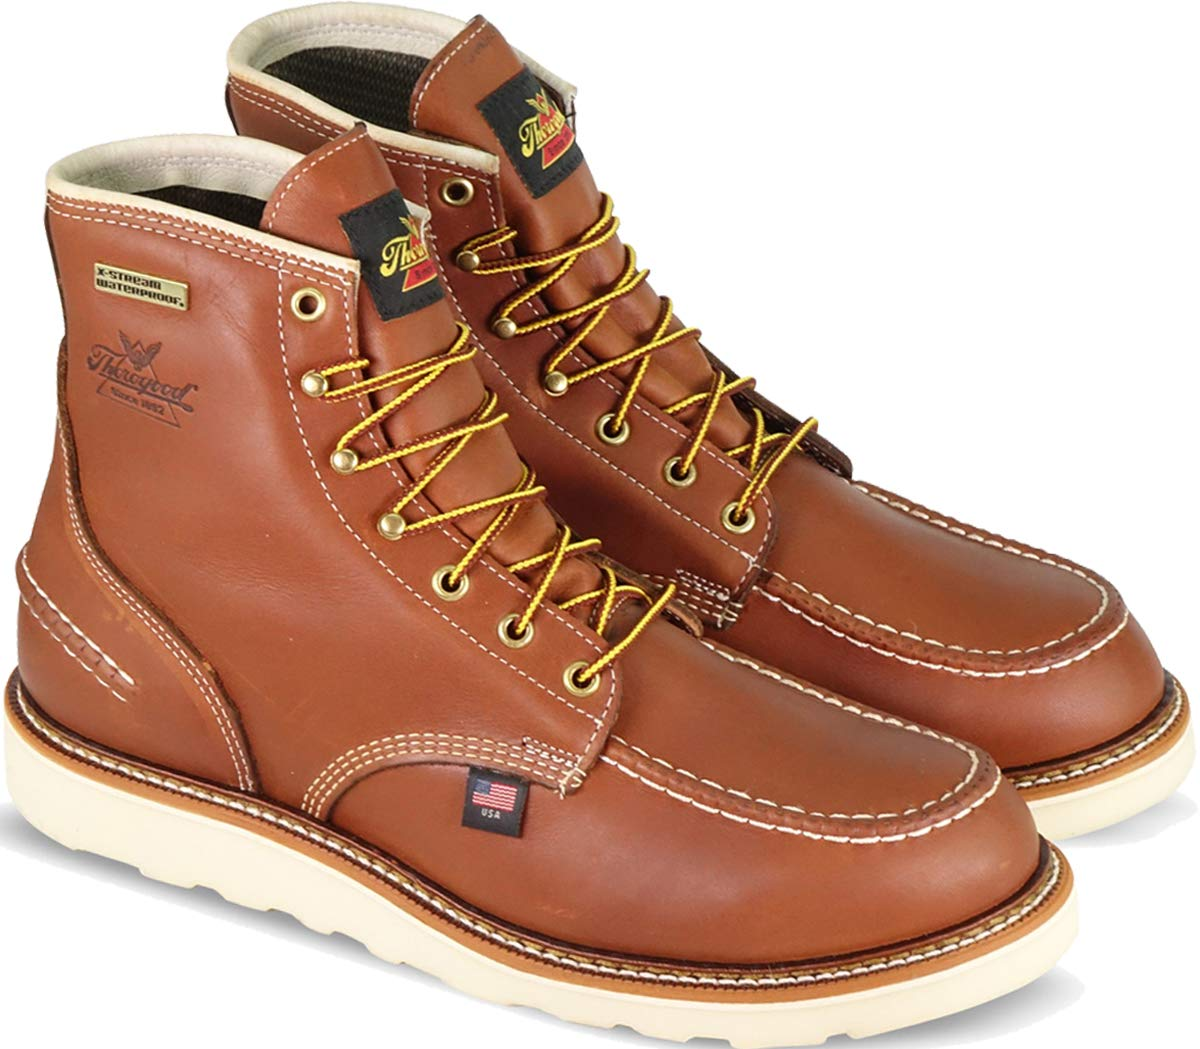 8bae83853a3 Best Rated in Safety Boots & Helpful Customer Reviews - Amazon.com